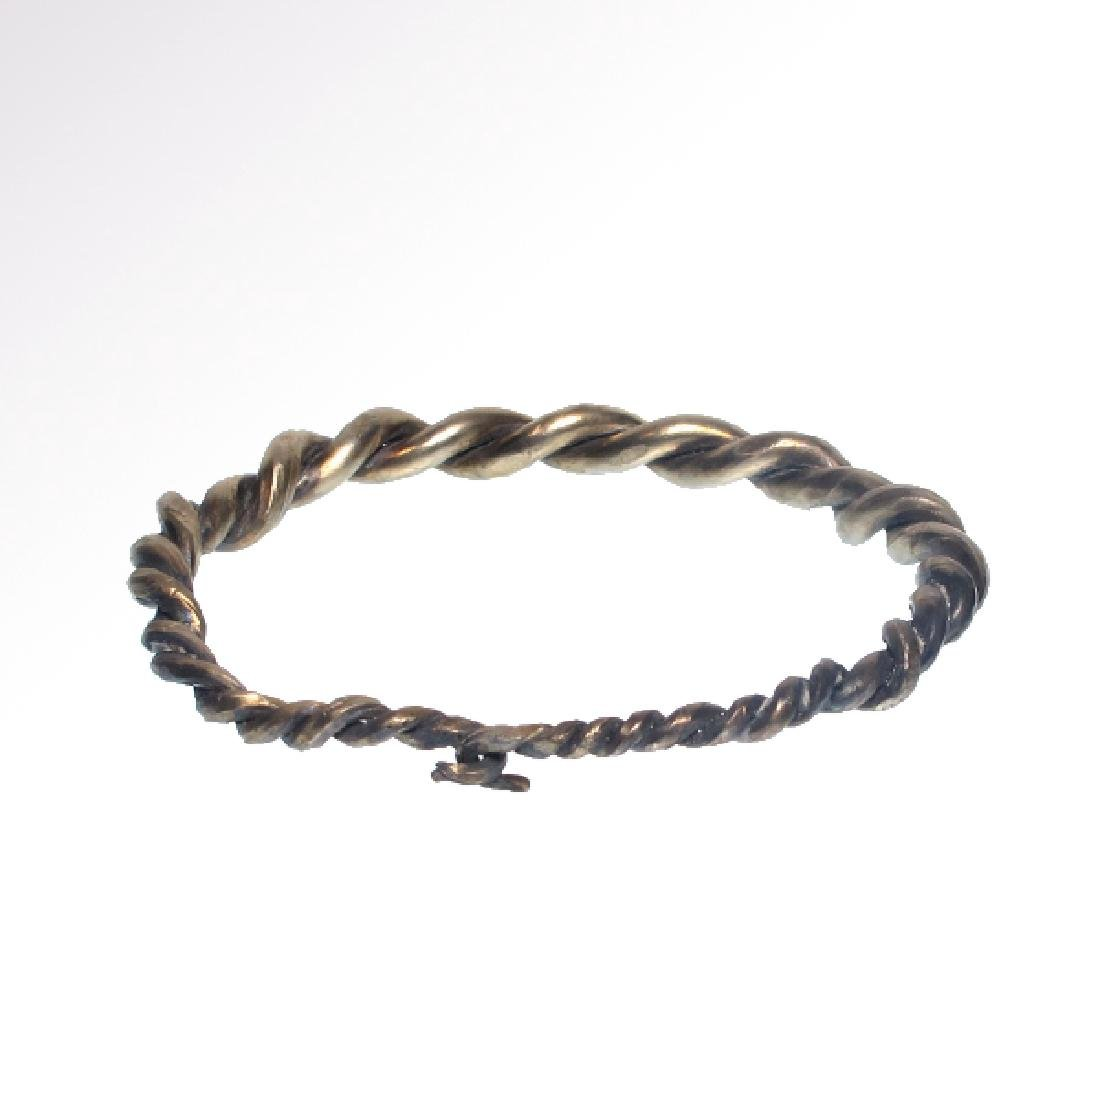 Viking Solid Silver Bracelet, c. 10th-11th Century A.D. - 5